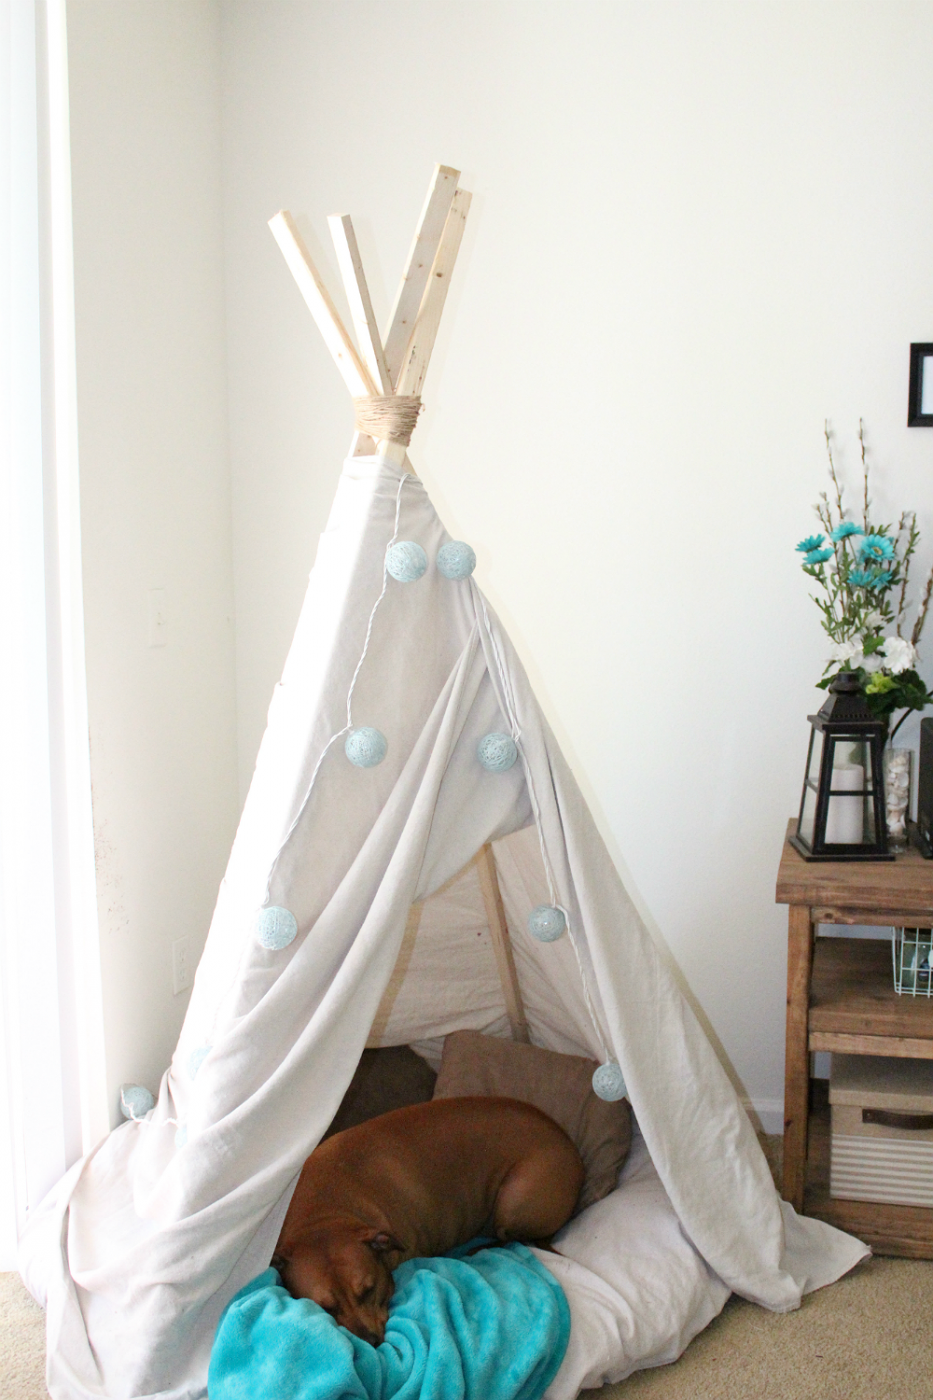 DIY 10 Minute Teepee for Under $16! | Sweet Teal